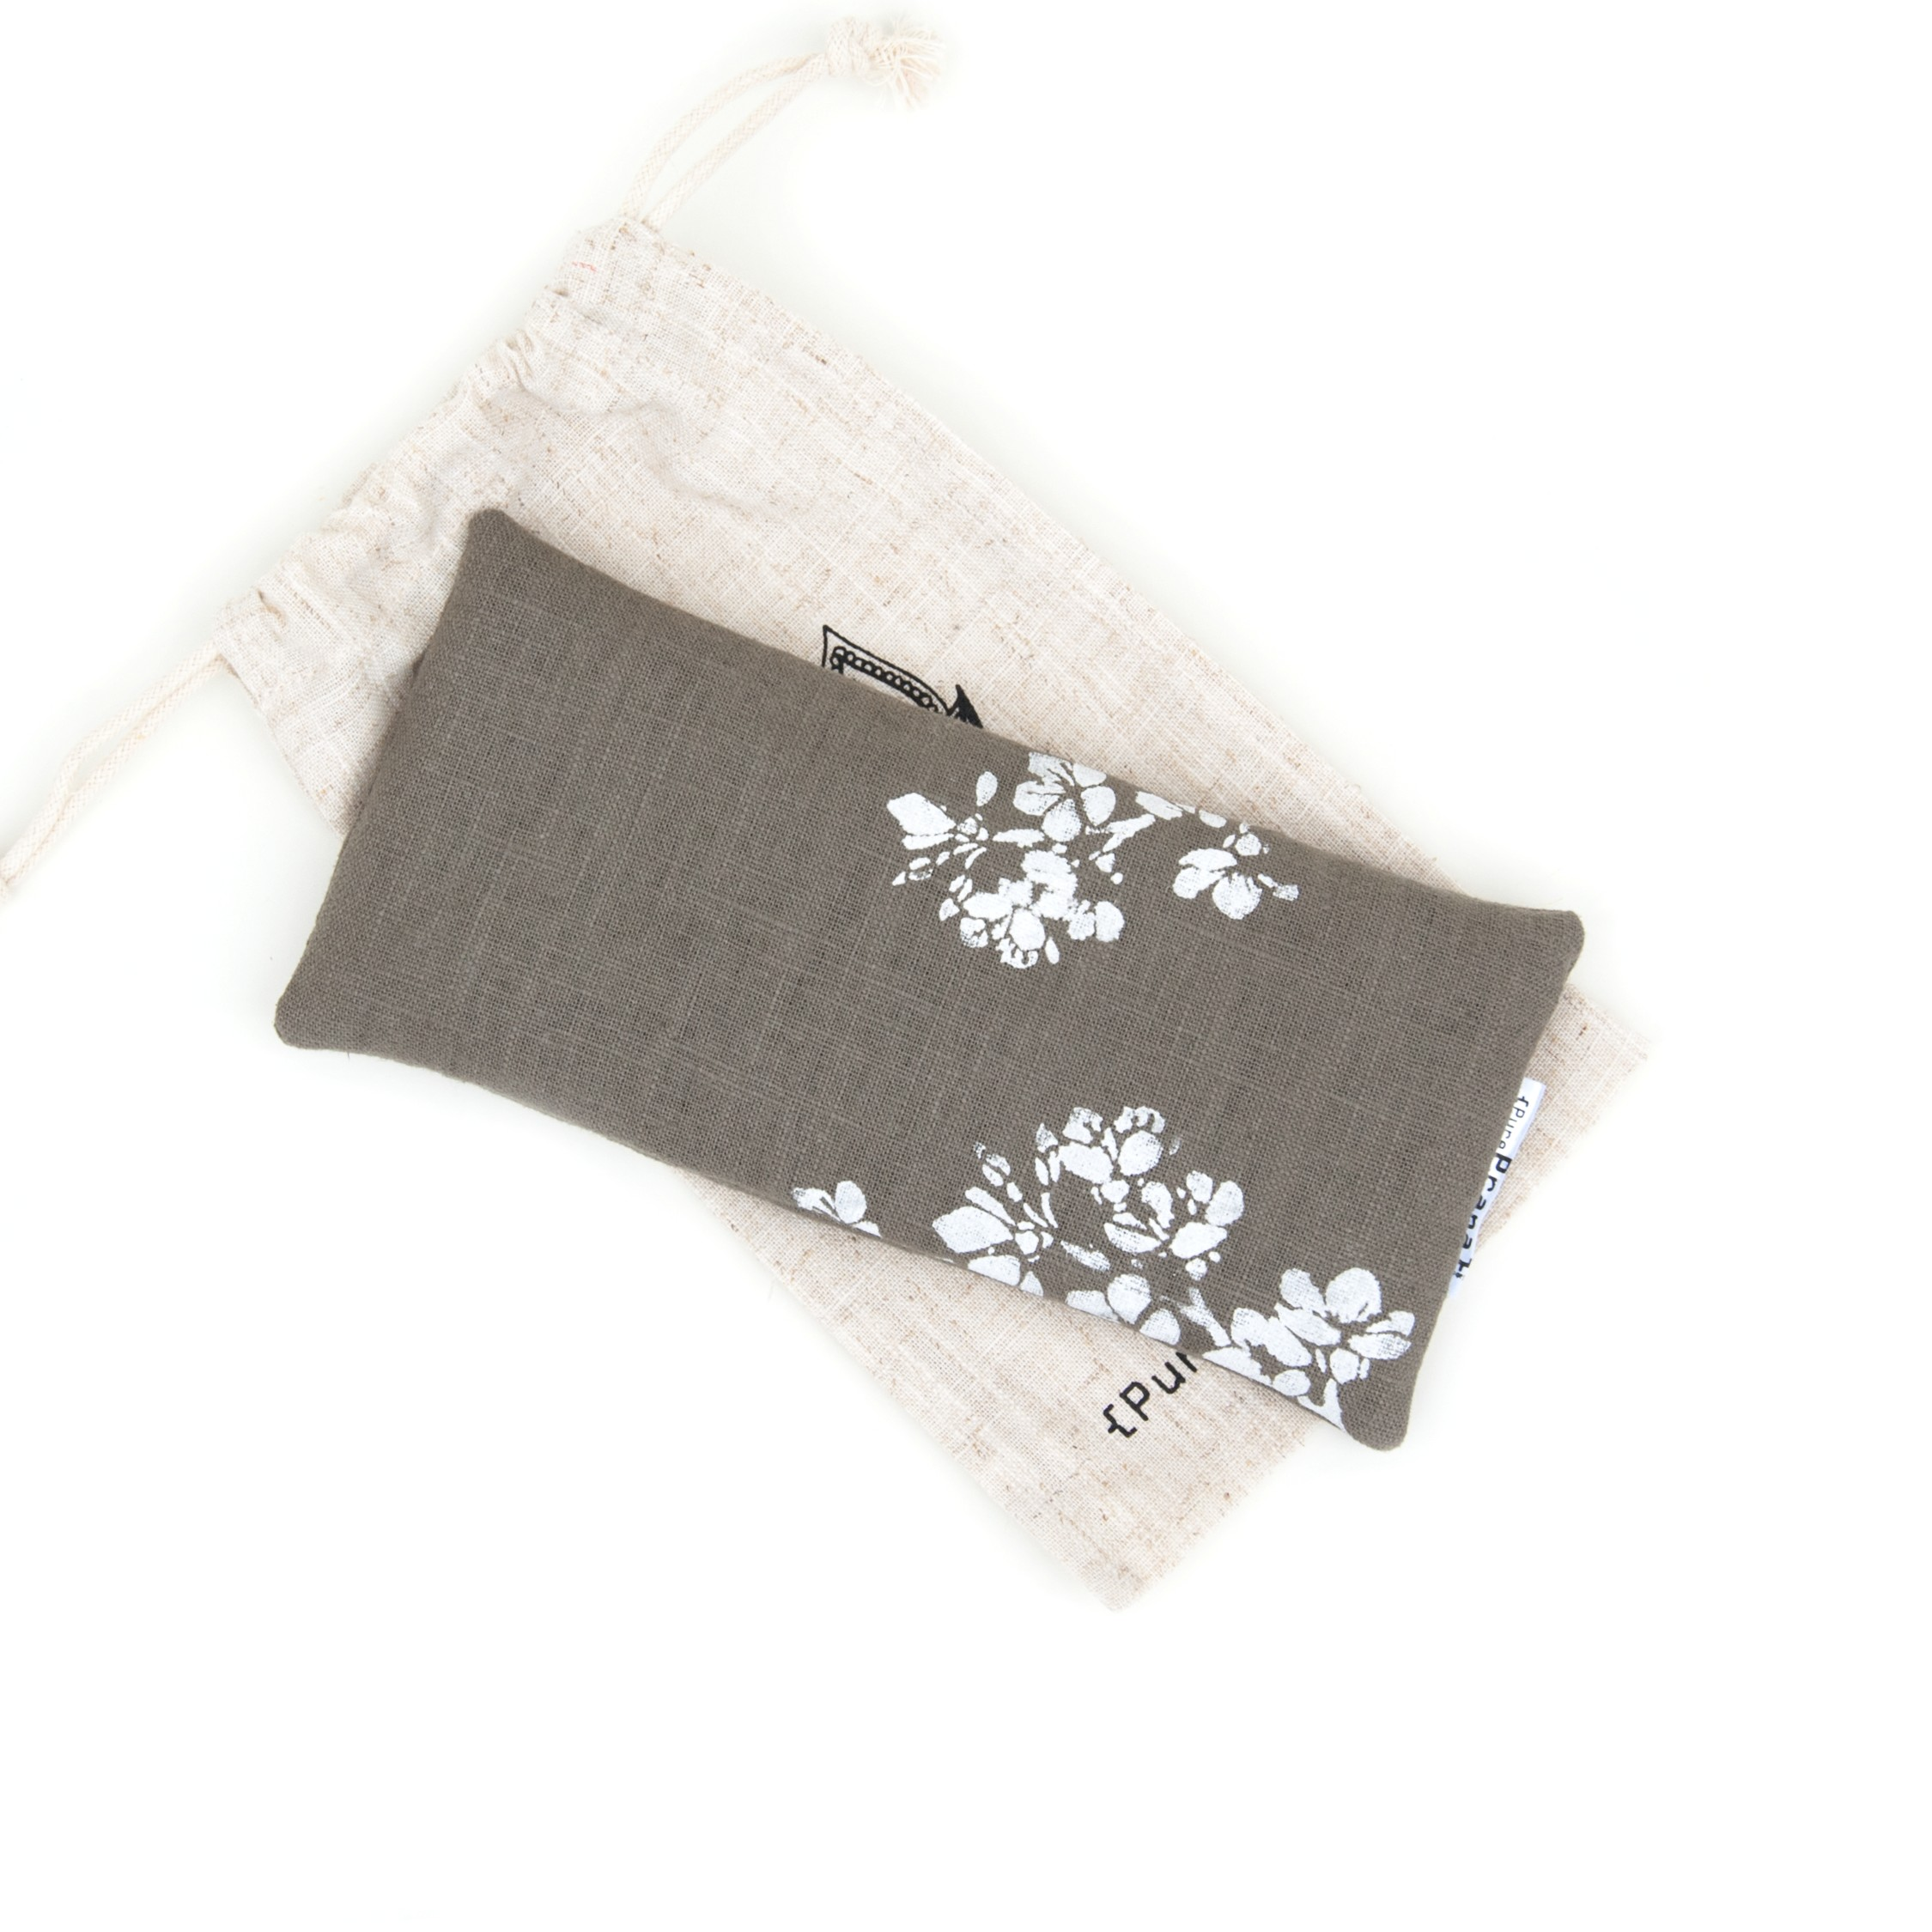 Eye pillow cherry blossom in olive green